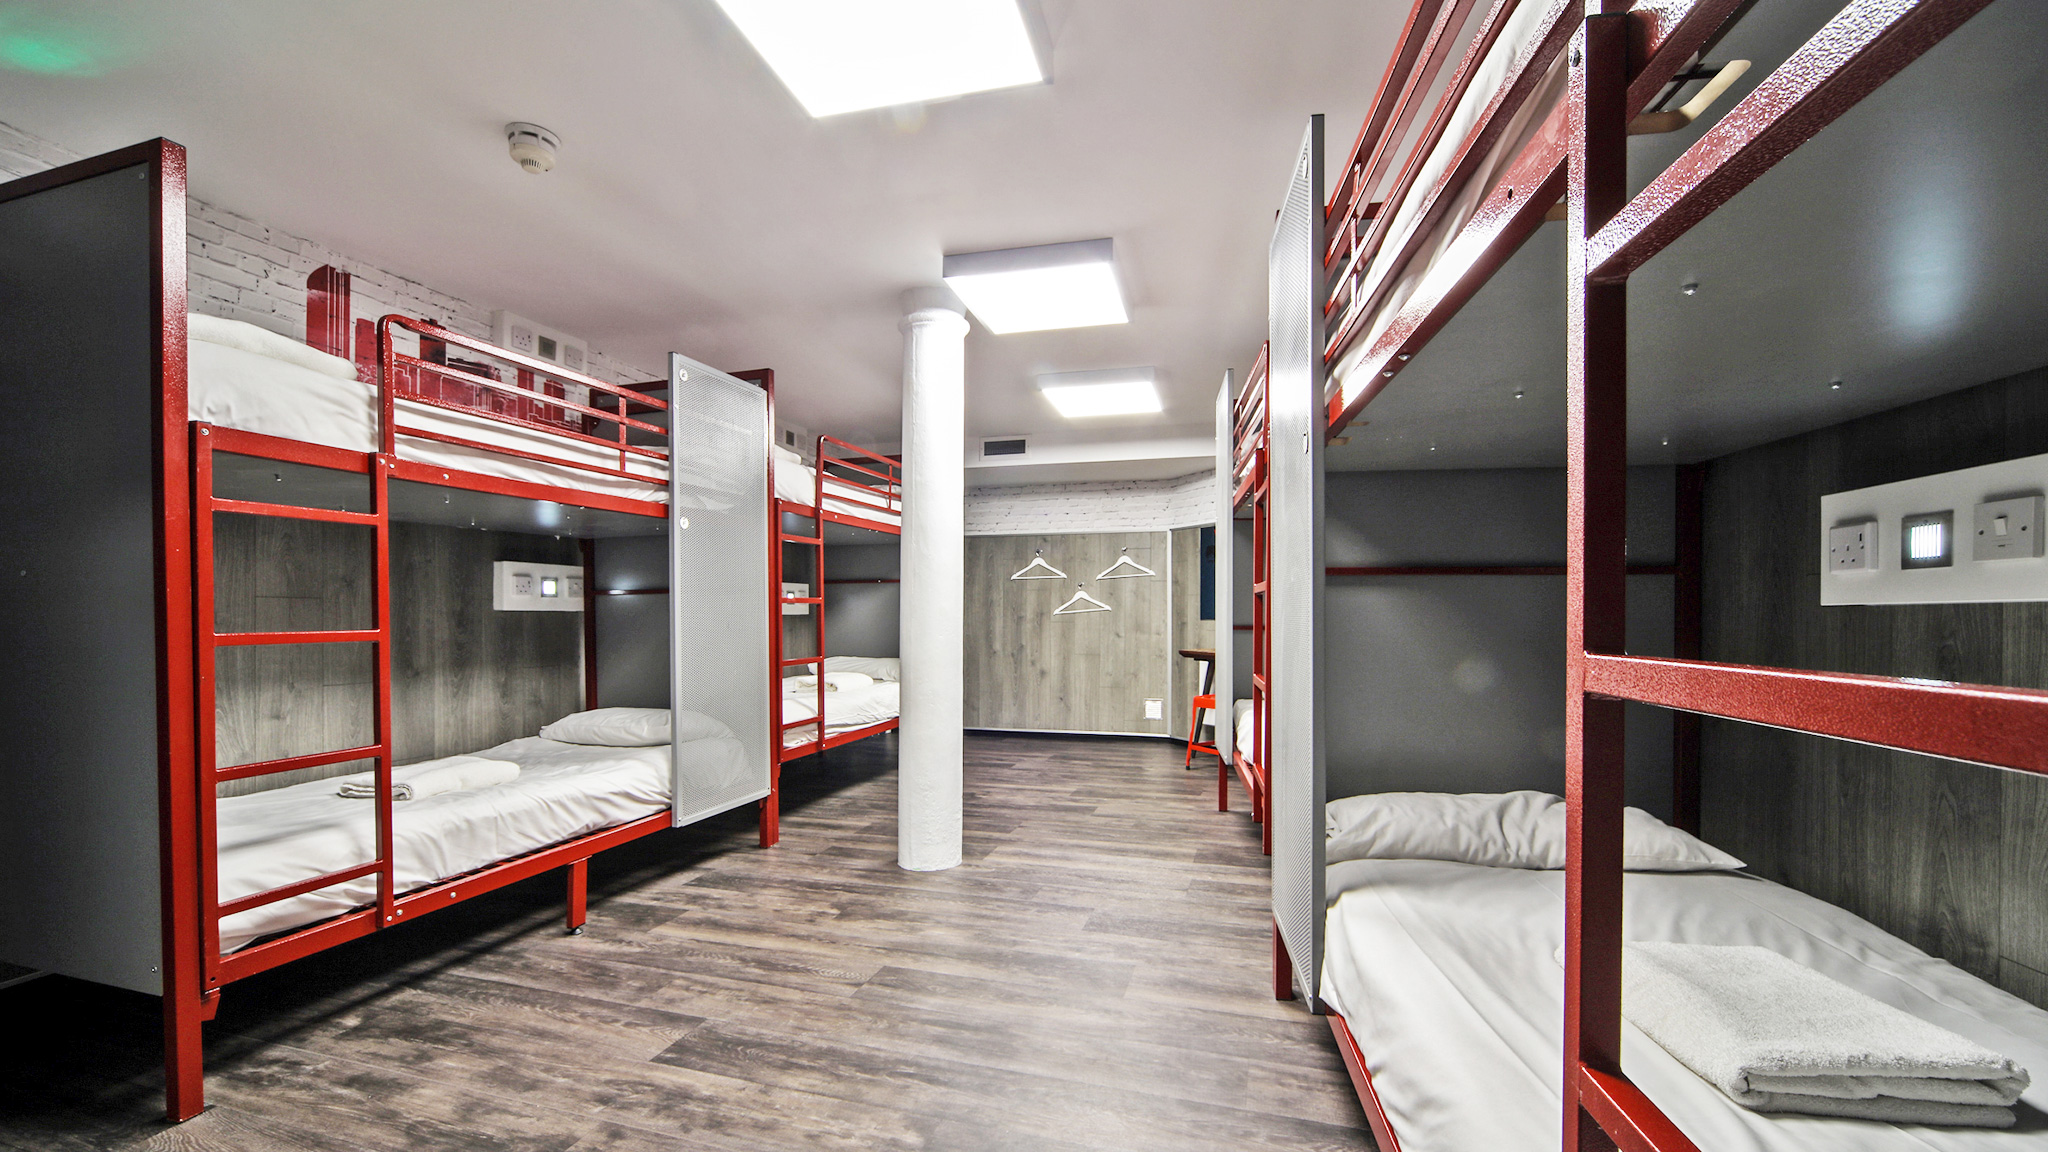 School group accommodation at Euro Hostel Liverpool